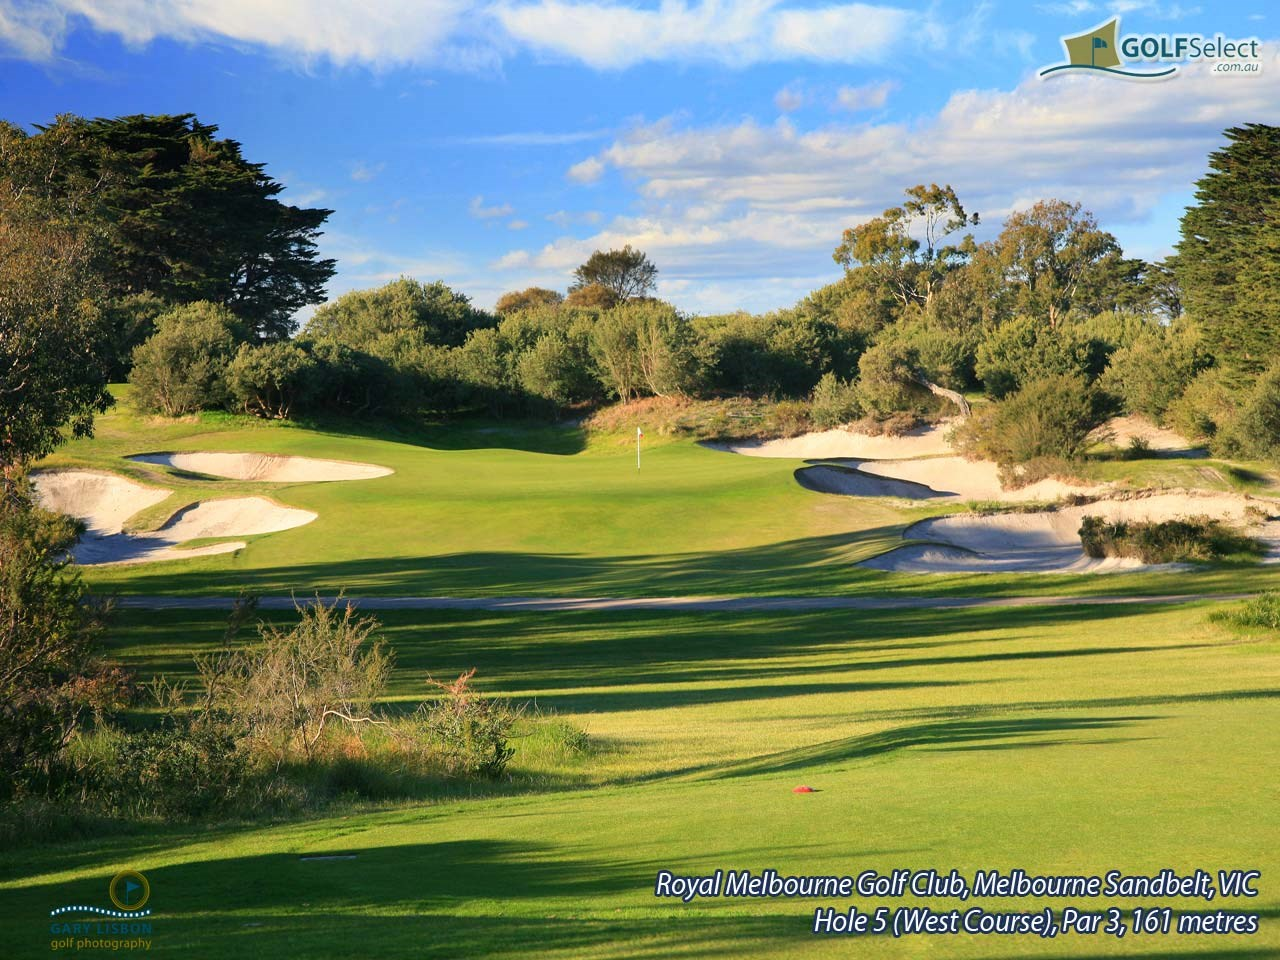 The Royal Melbourne GC (West Course) Hole 5 (West Course), Par 3, 161 metres